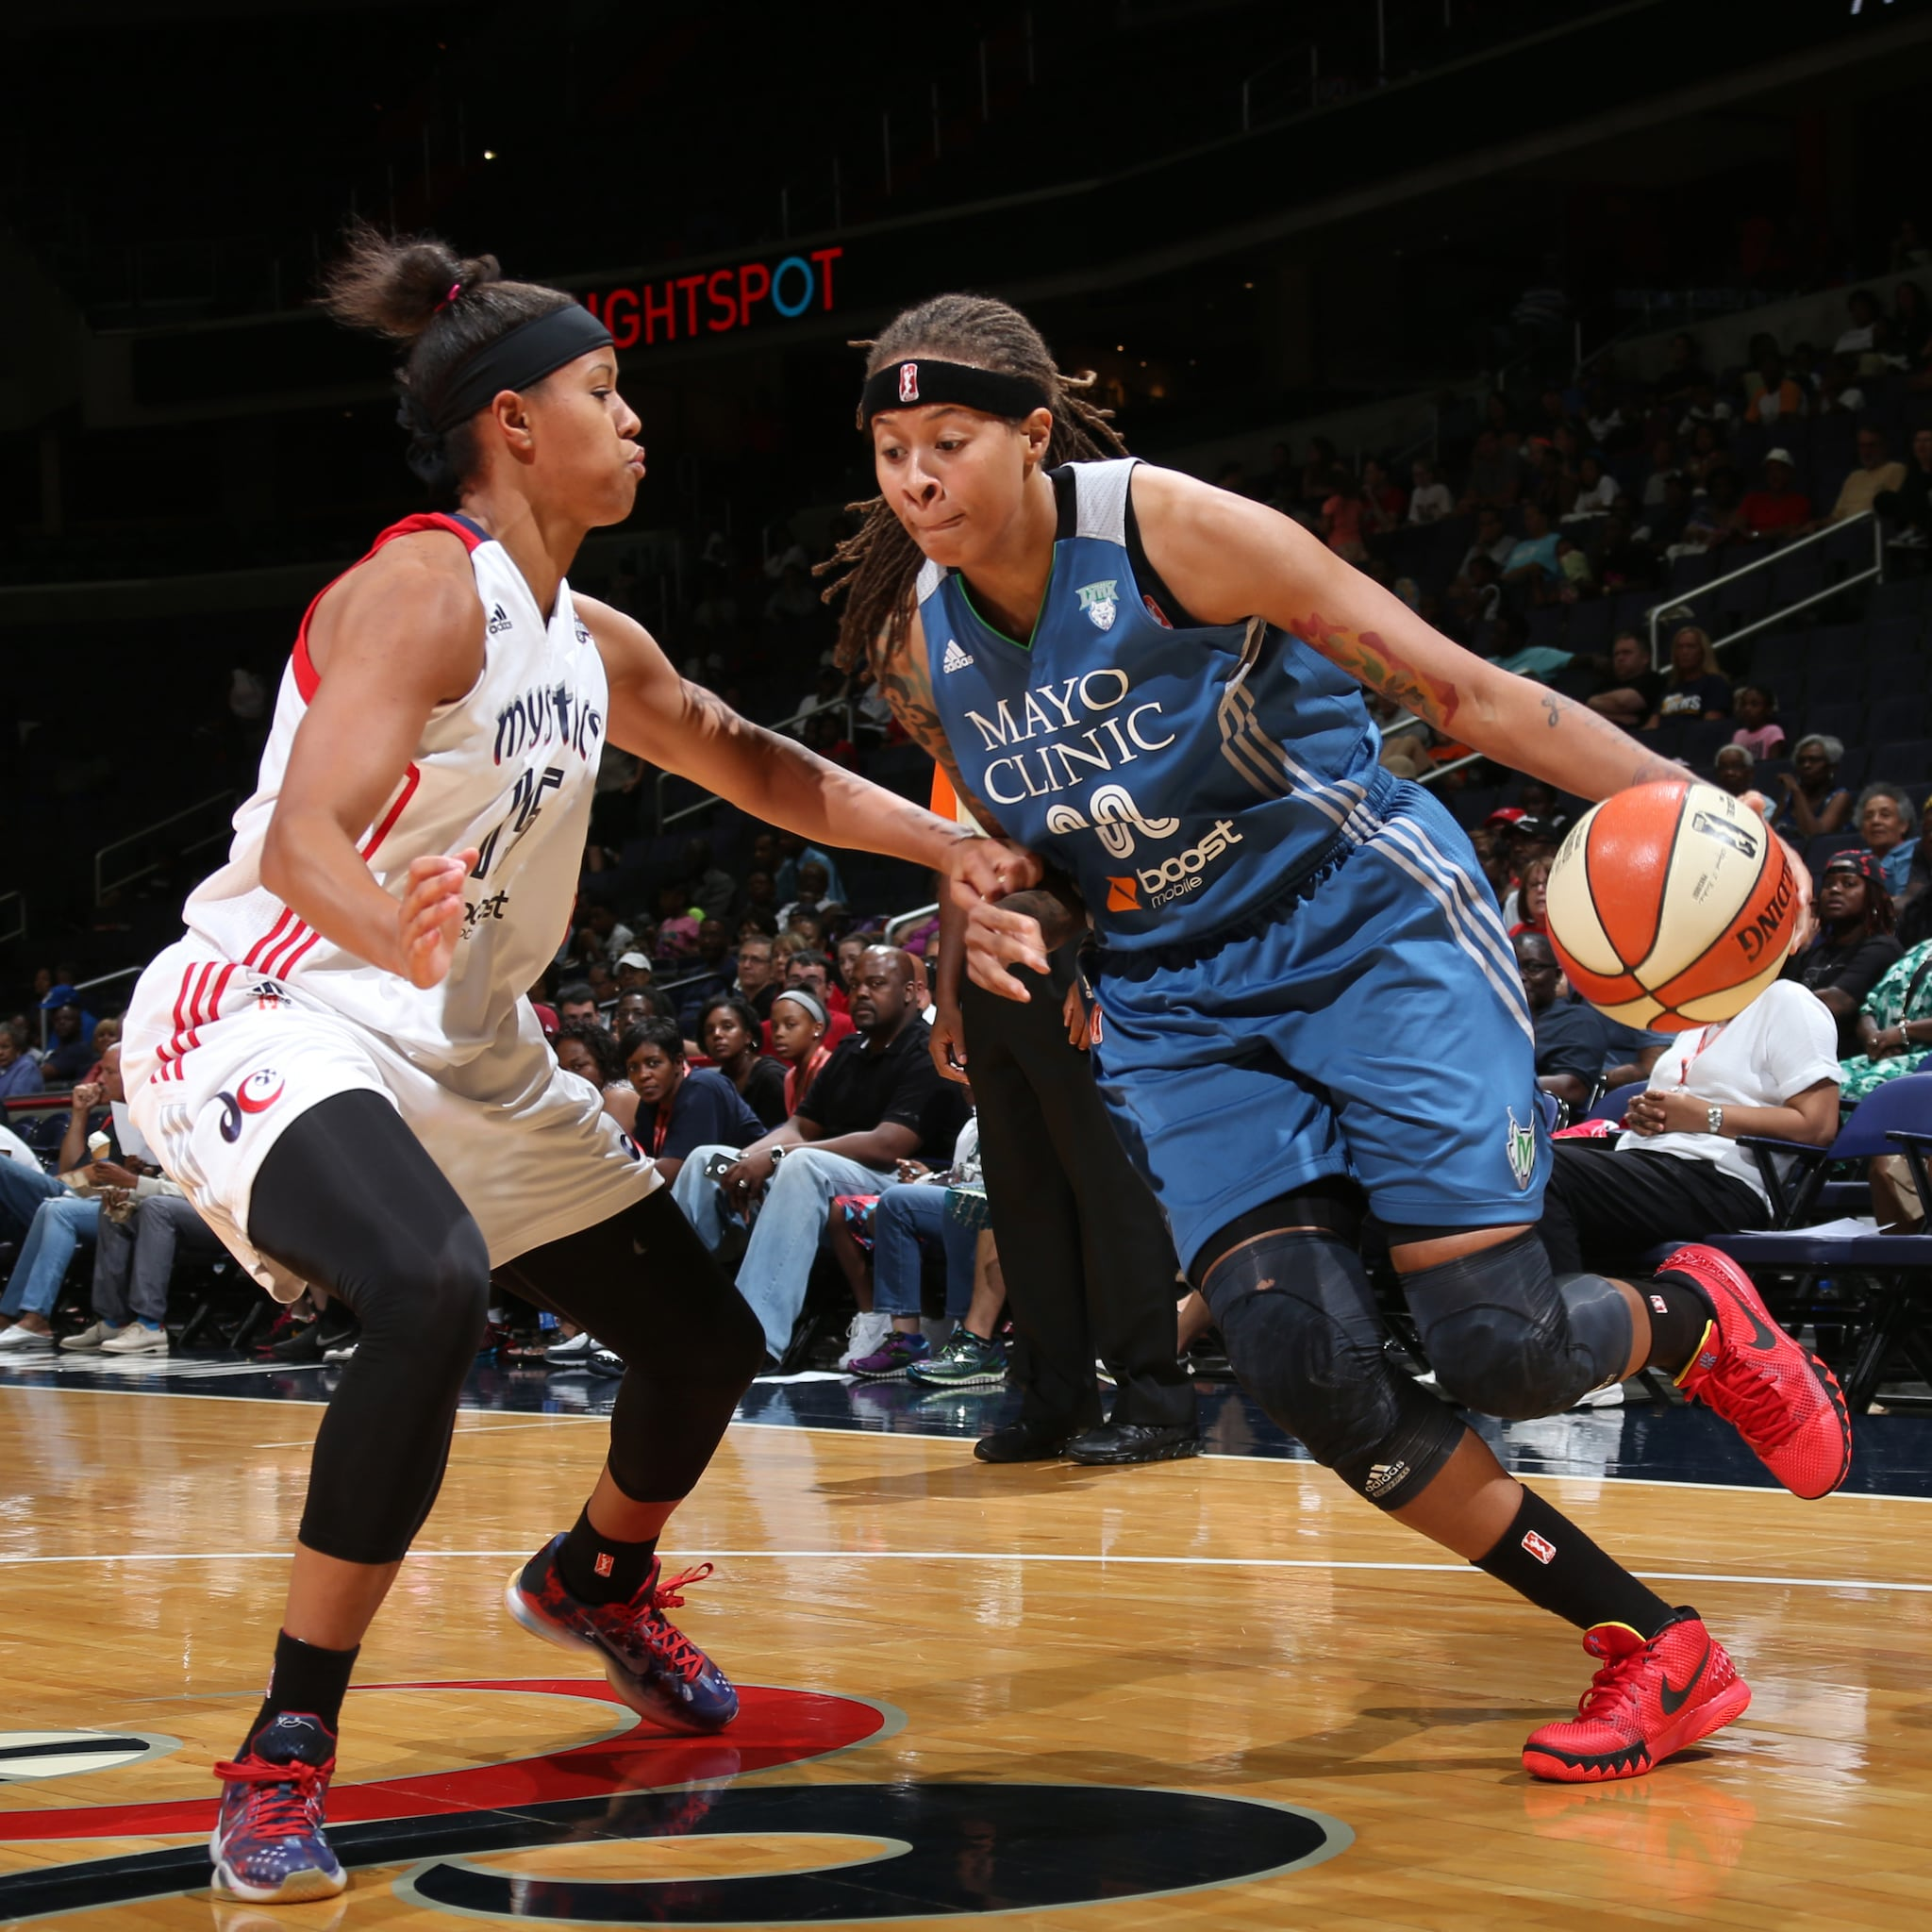 Lynx guard Seimone Augustus, playing in just her second game back from a knee injury, struggled against the Mystics, scoring just four points and grabbing  three rebounds in 23 minutes of playing time.